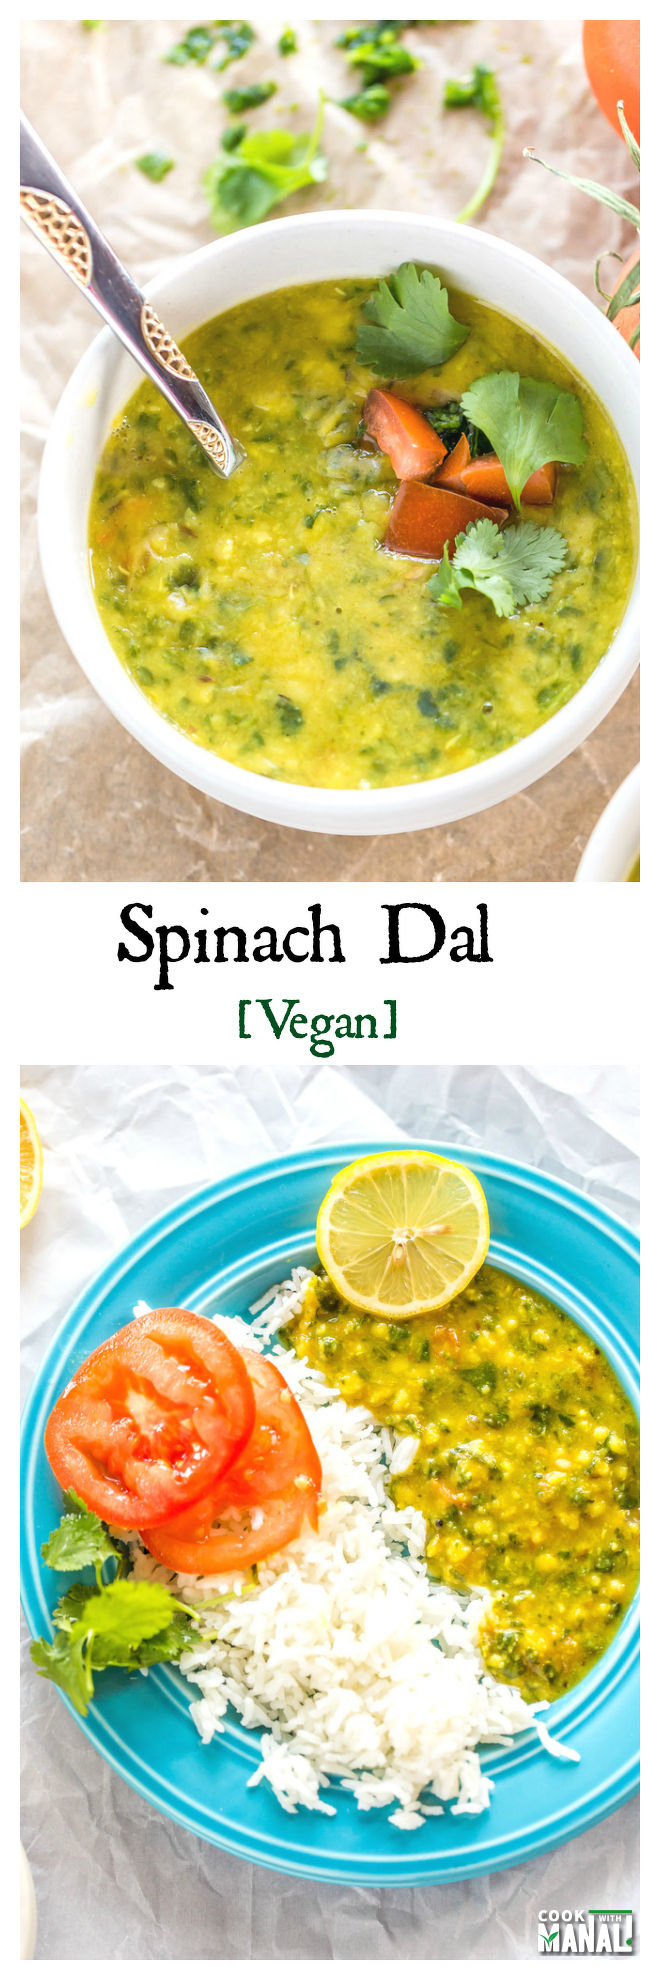 Spinach Dal Collage